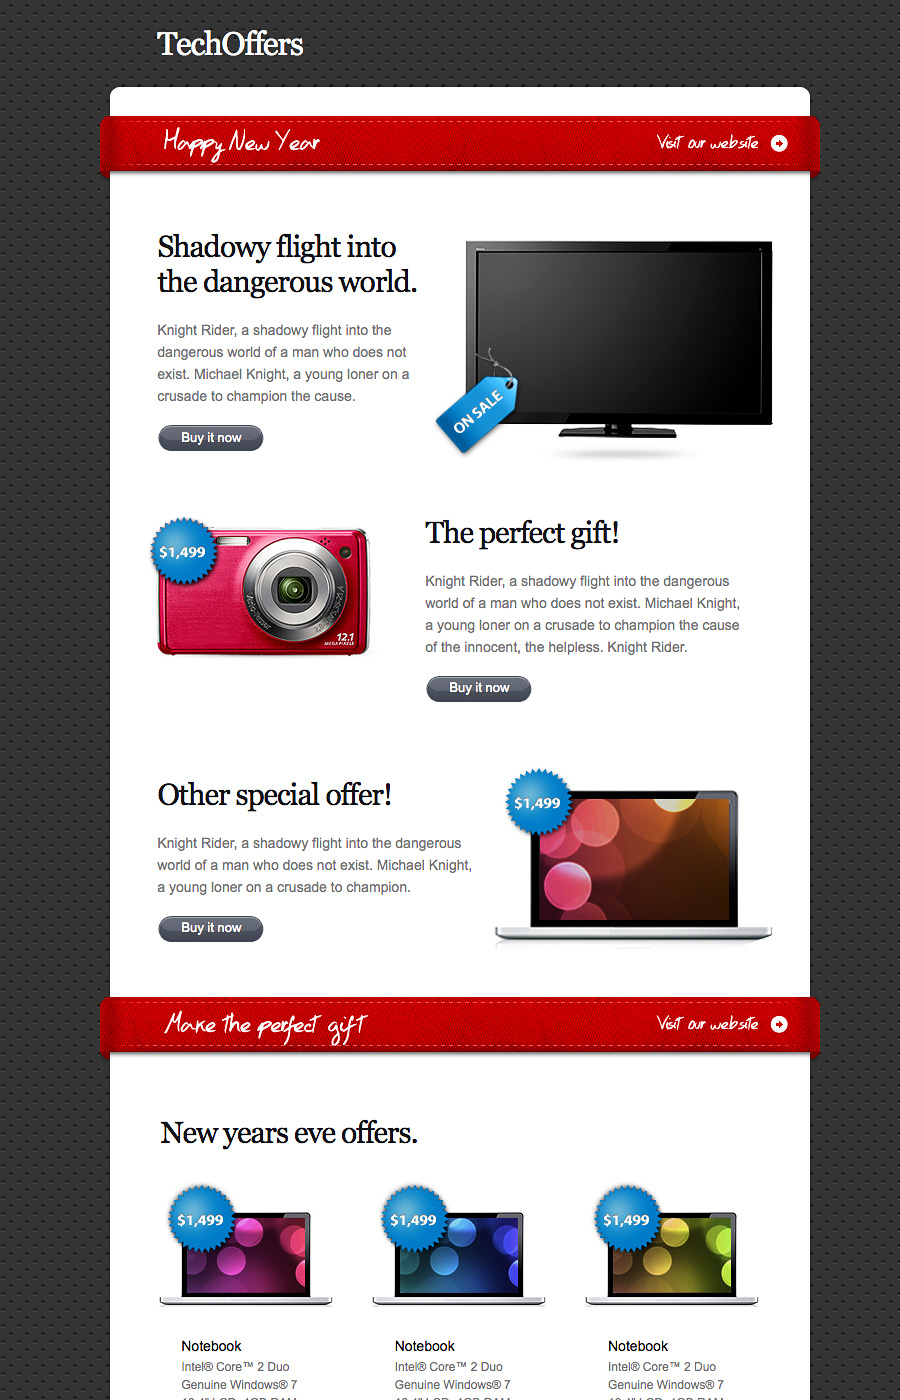 TechOffers - Multipurpose Minimalist Newsletter